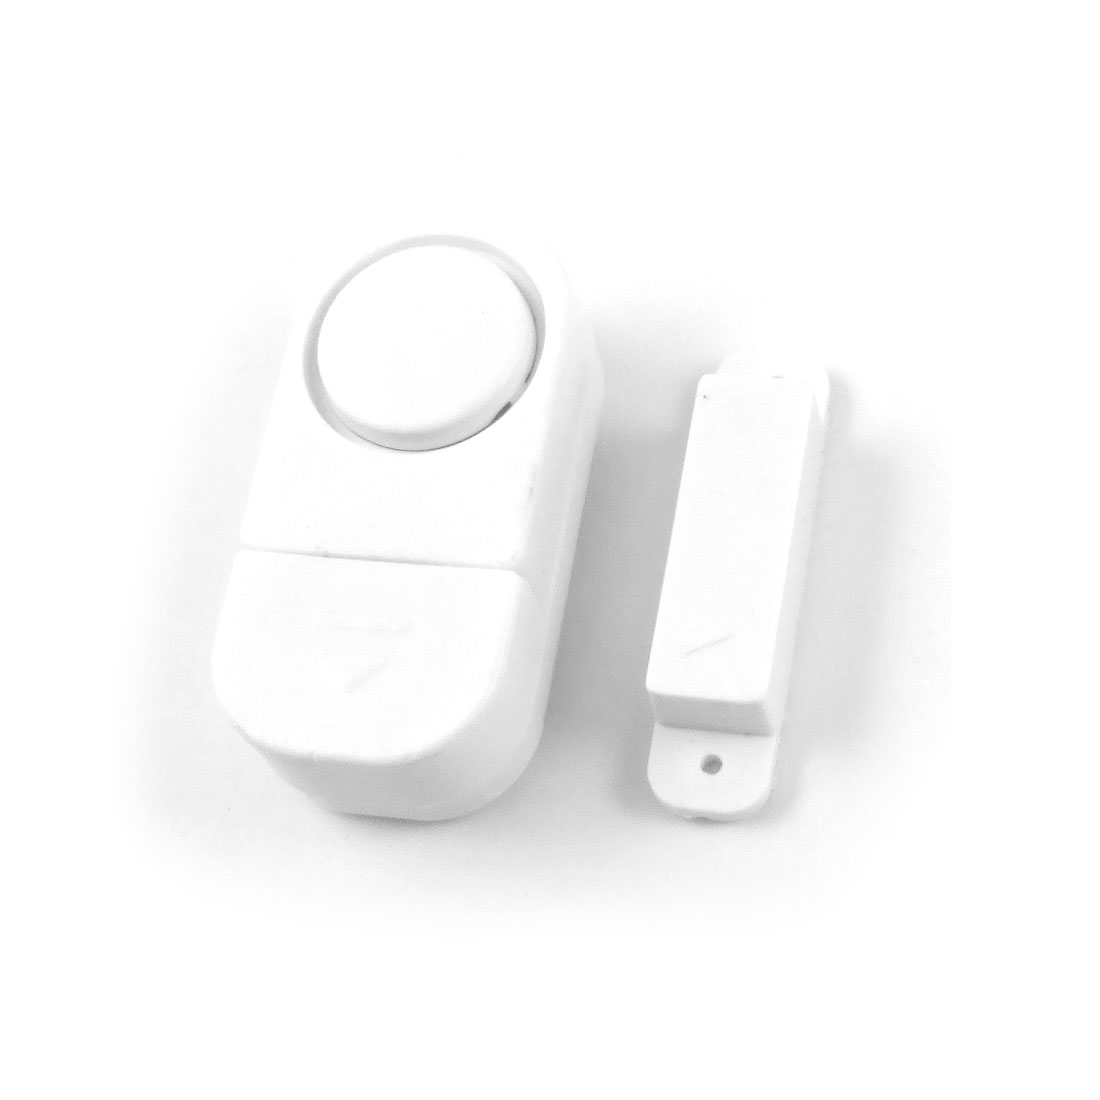 Security Magnetic Detector Adhesive Door Sensor Alarm White